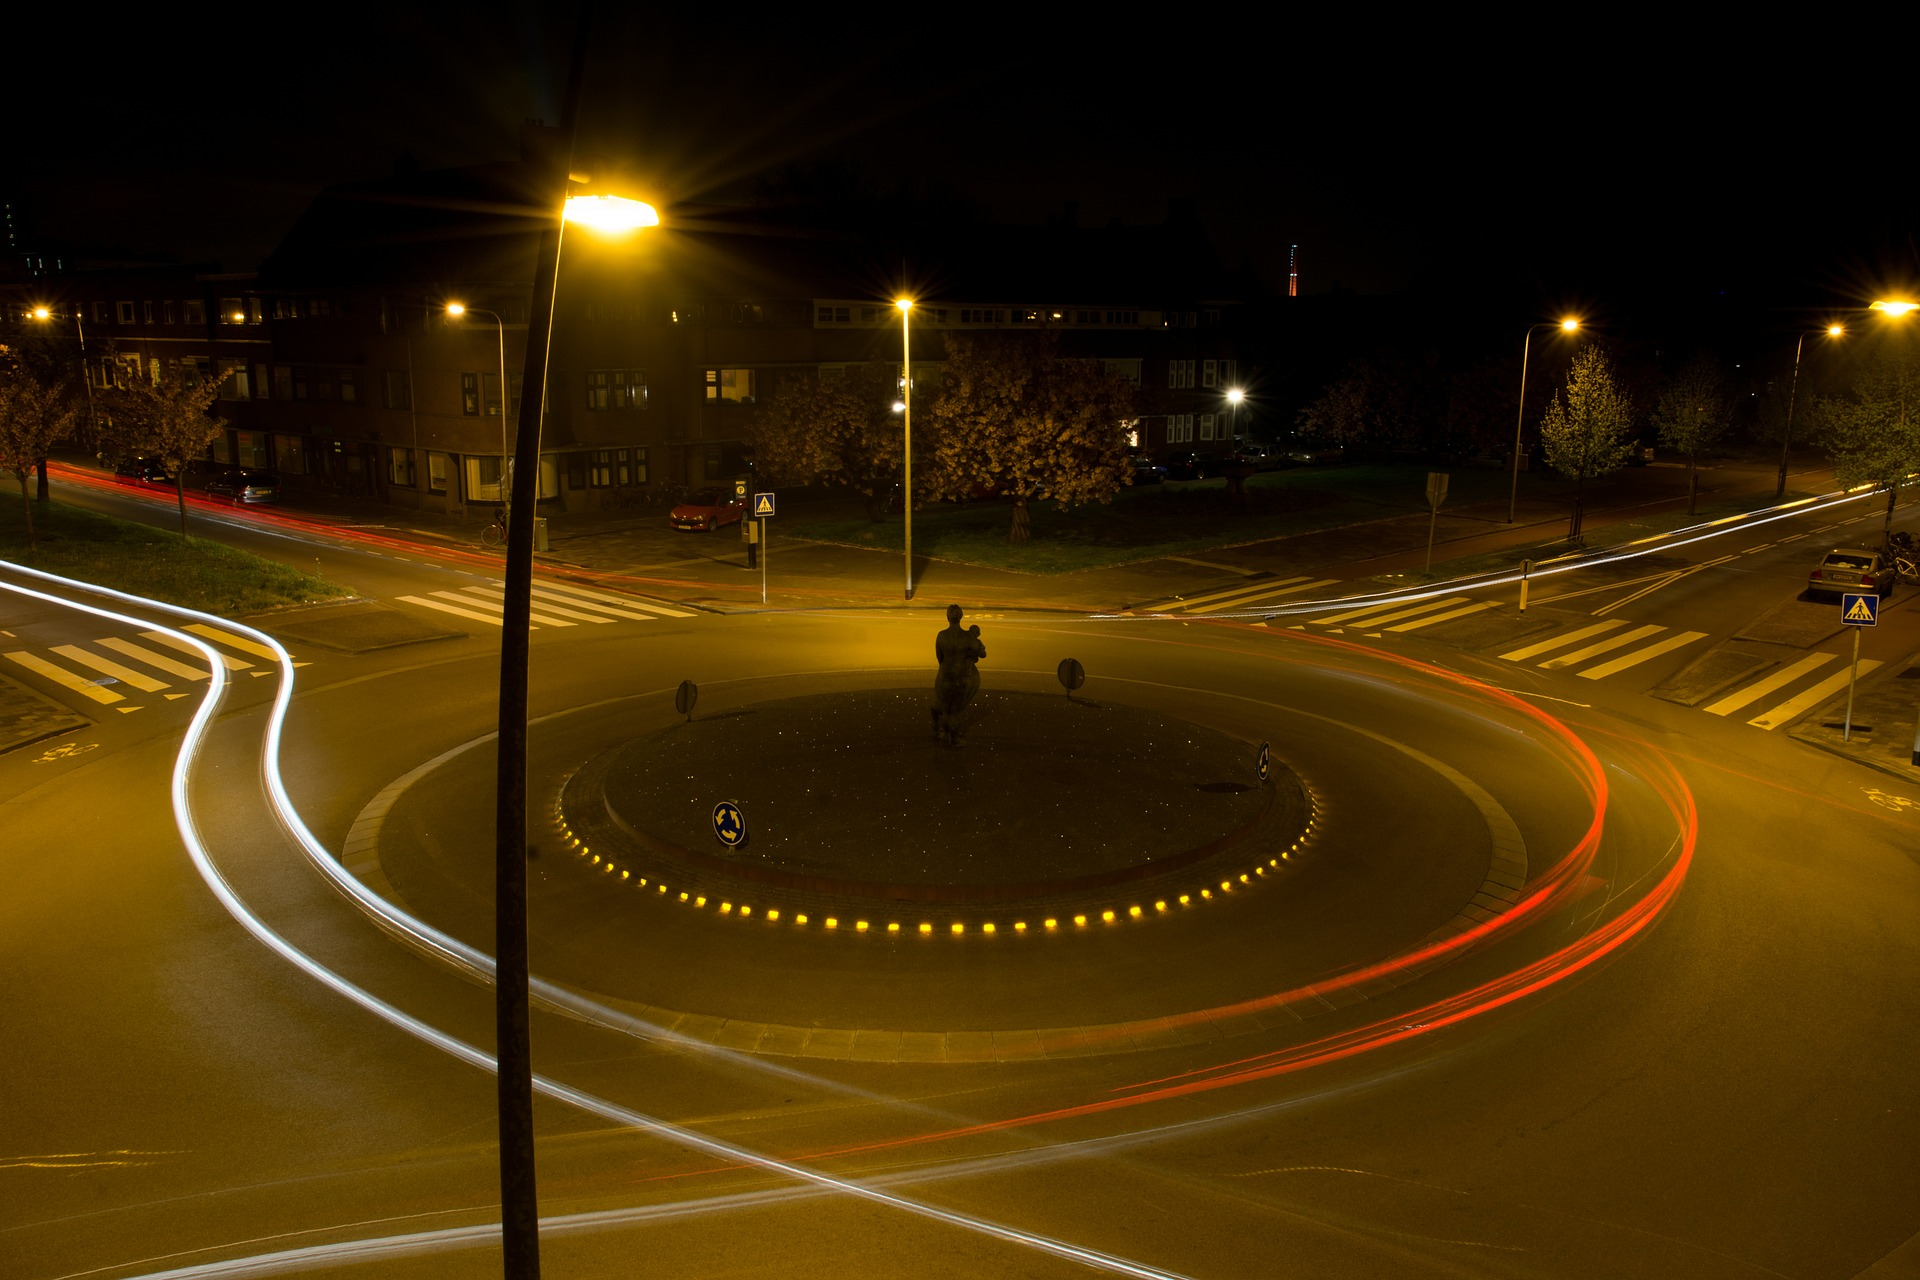 Roundabout Traffic, City, Highway, Light, Path, HQ Photo